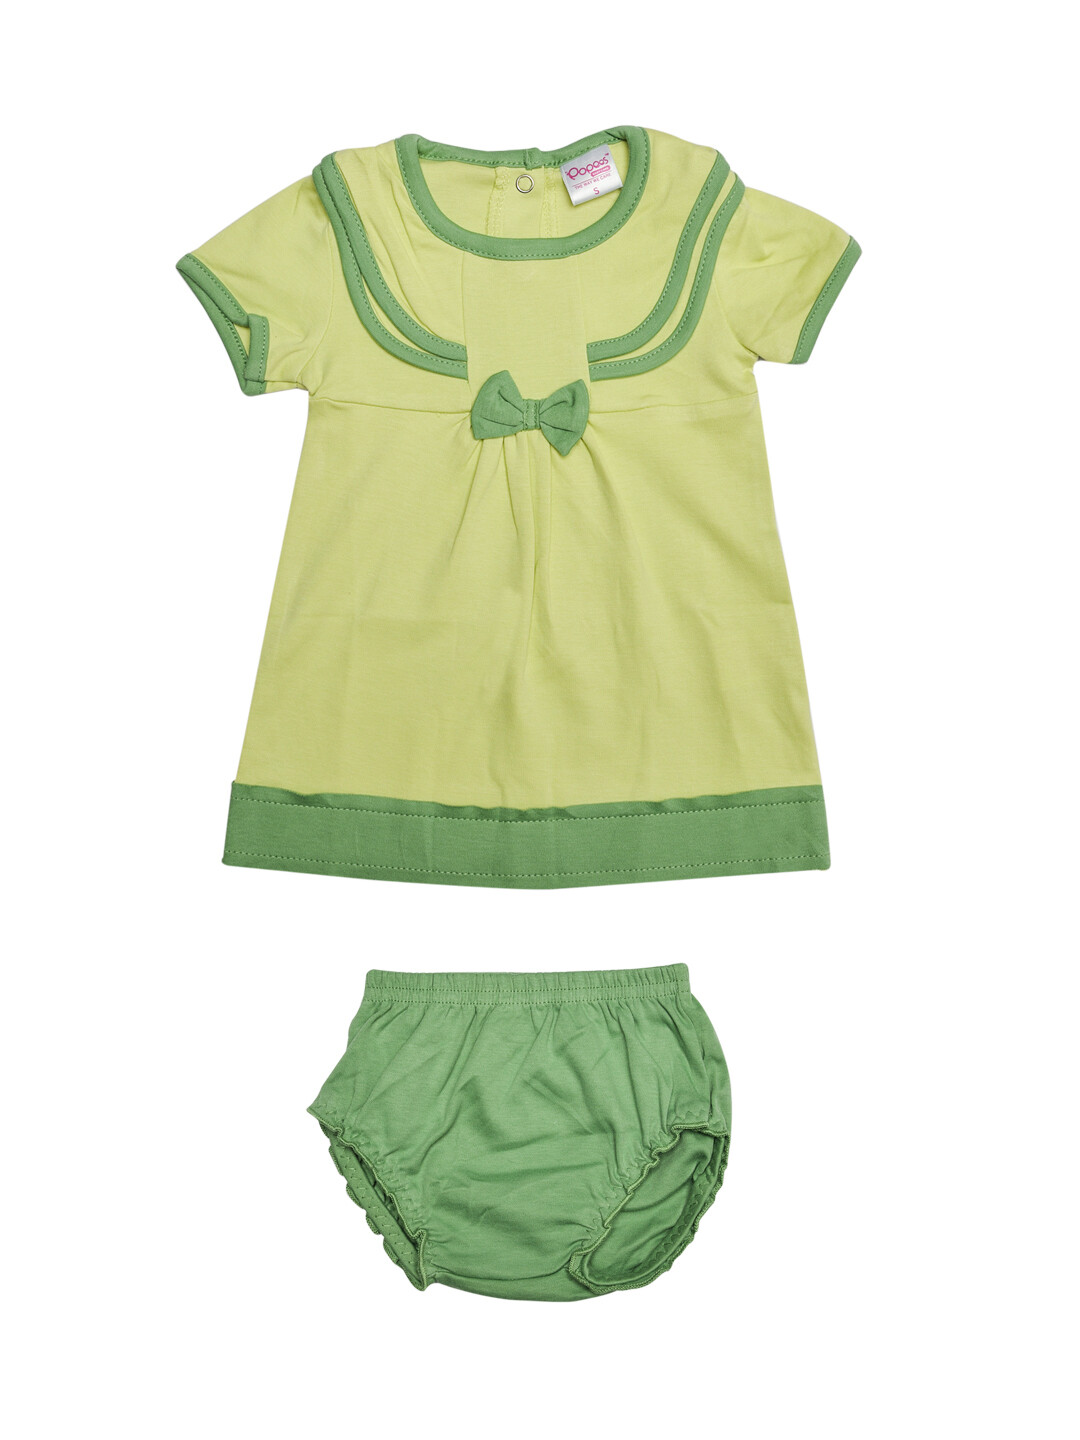 Limora Shadow Lime Baby Girls Bow Design Frock with Bloomer